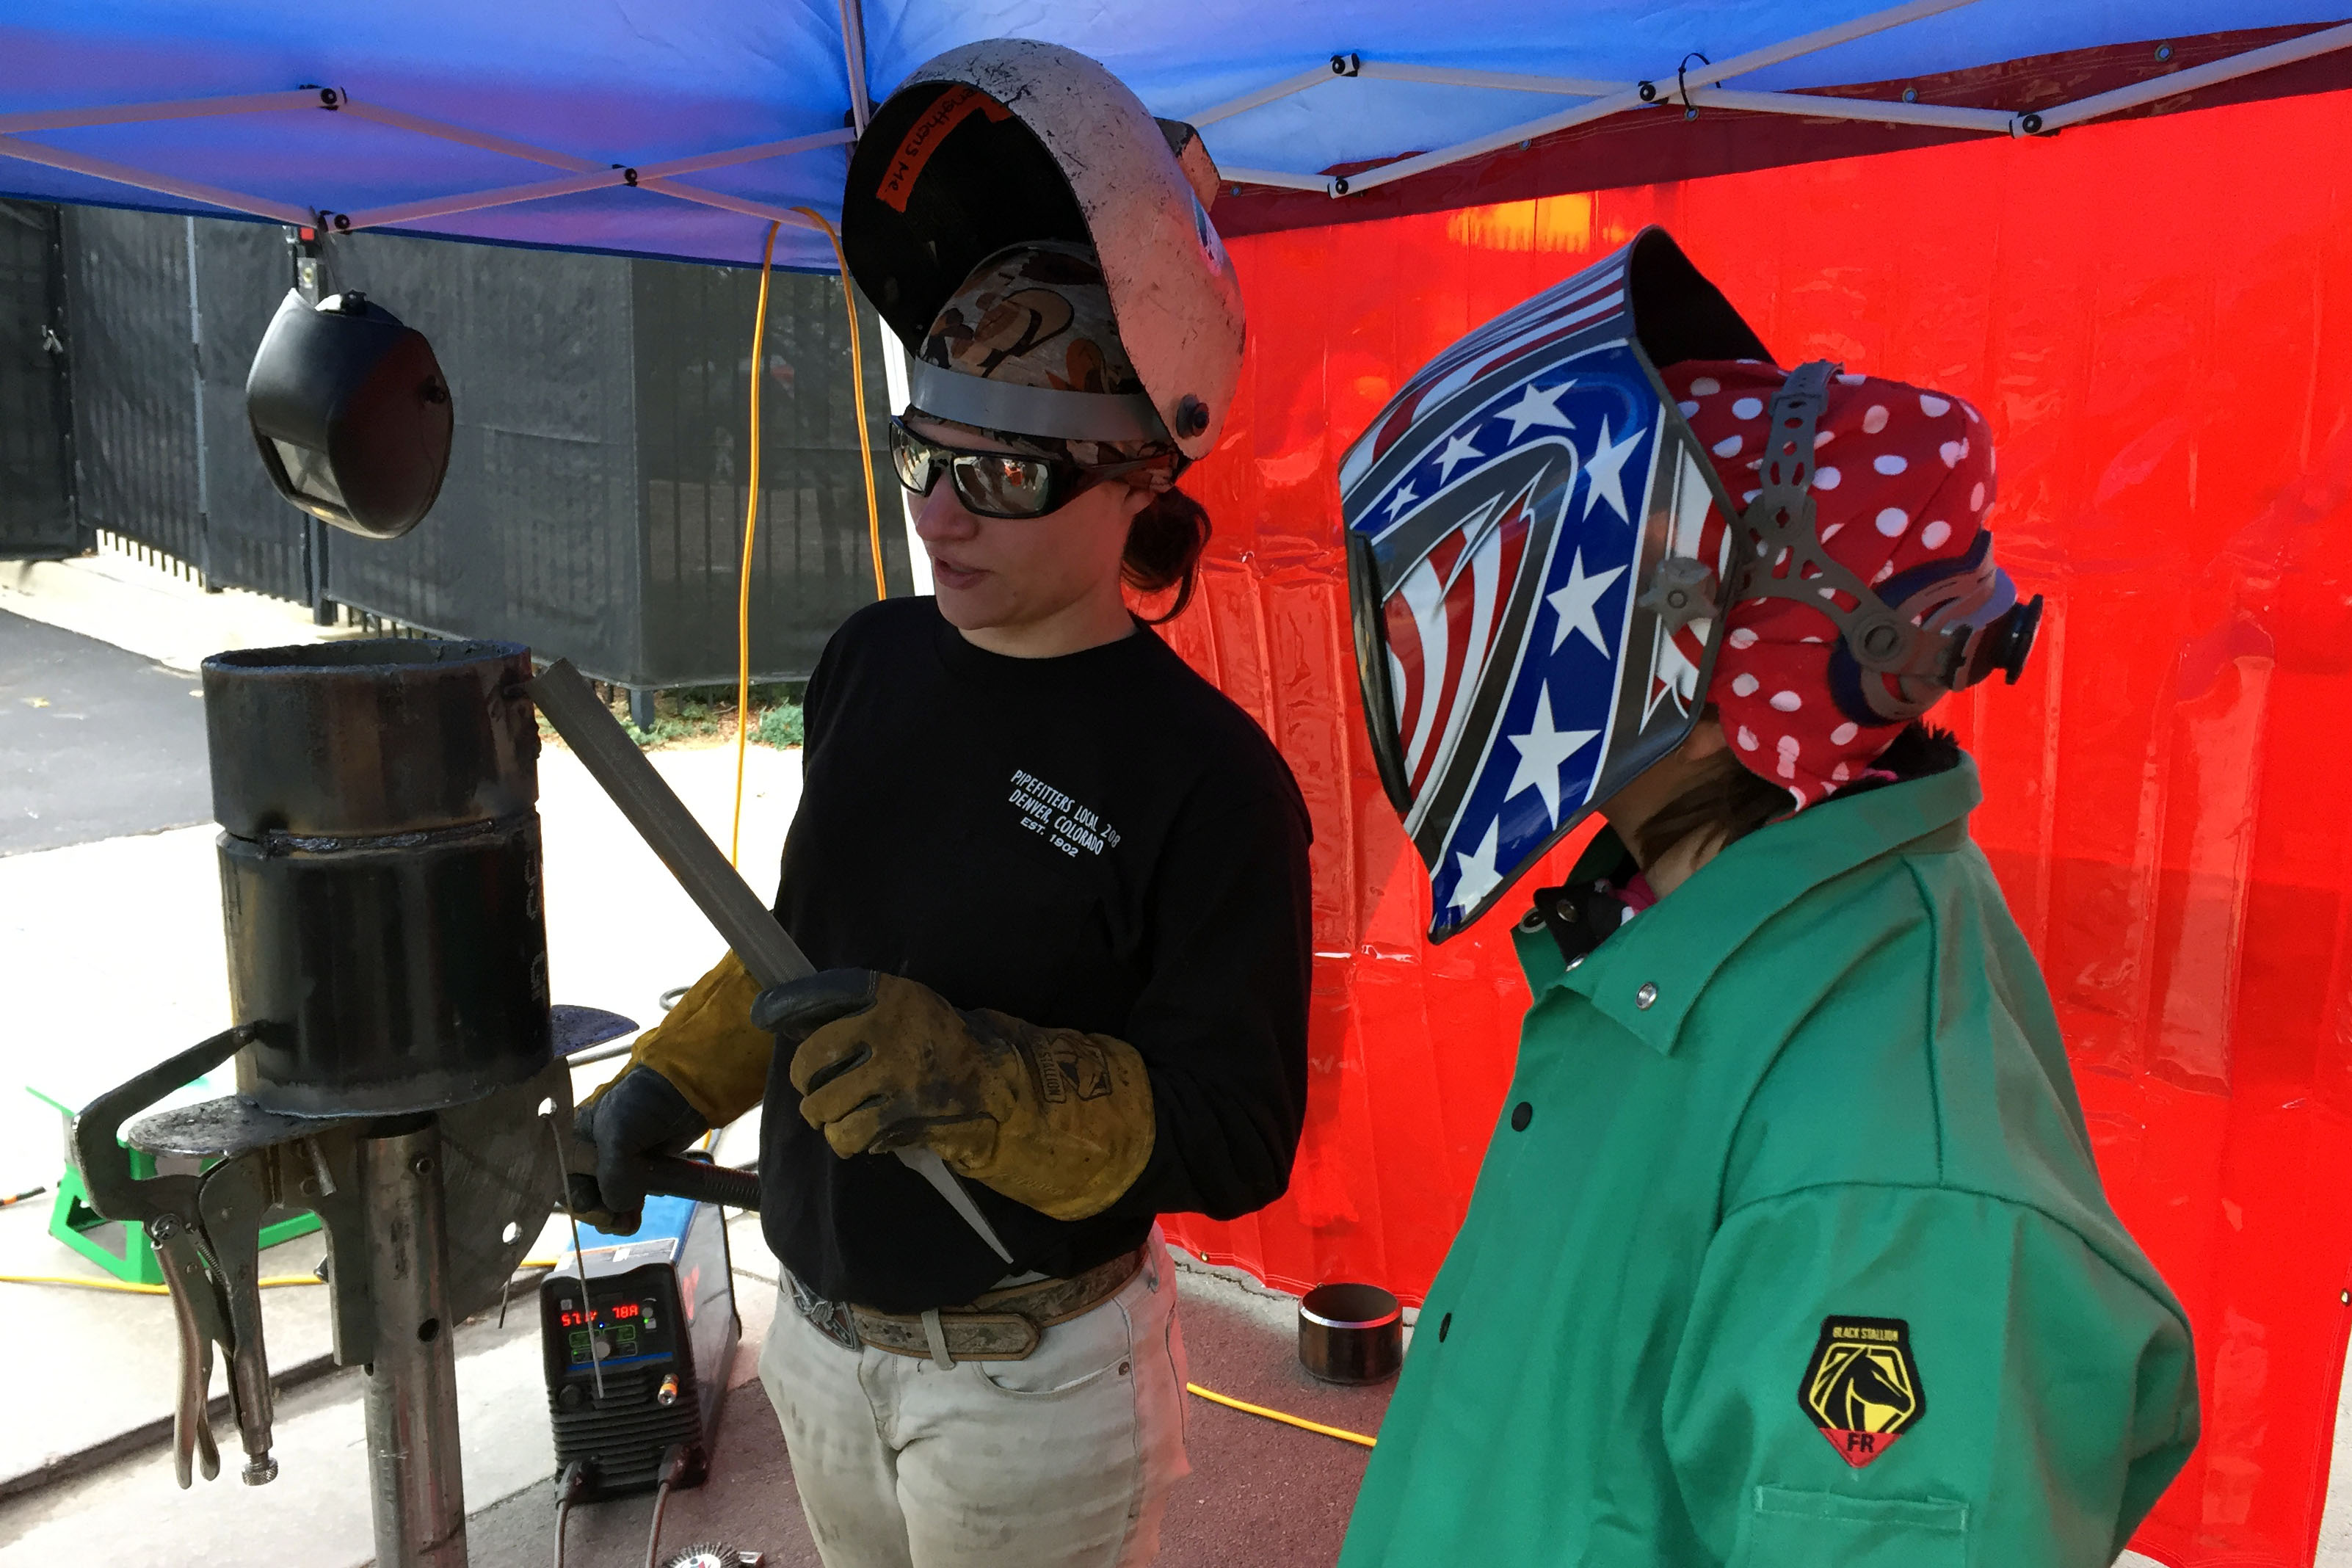 "<p>Rachel Neeb (left), a second-year pipefitting apprentice, shows 12-year-old Rayna Jeannelle (right) how to weld. The two were attending the Transportation and Construction Girl career fair at the <span style=""color: rgb(64, 69, 64);"">Renaissance Hotel Stapleton in Denver. The annual event exposes young girls and teenagers to jobs in male-dominated fields.</span></p>"